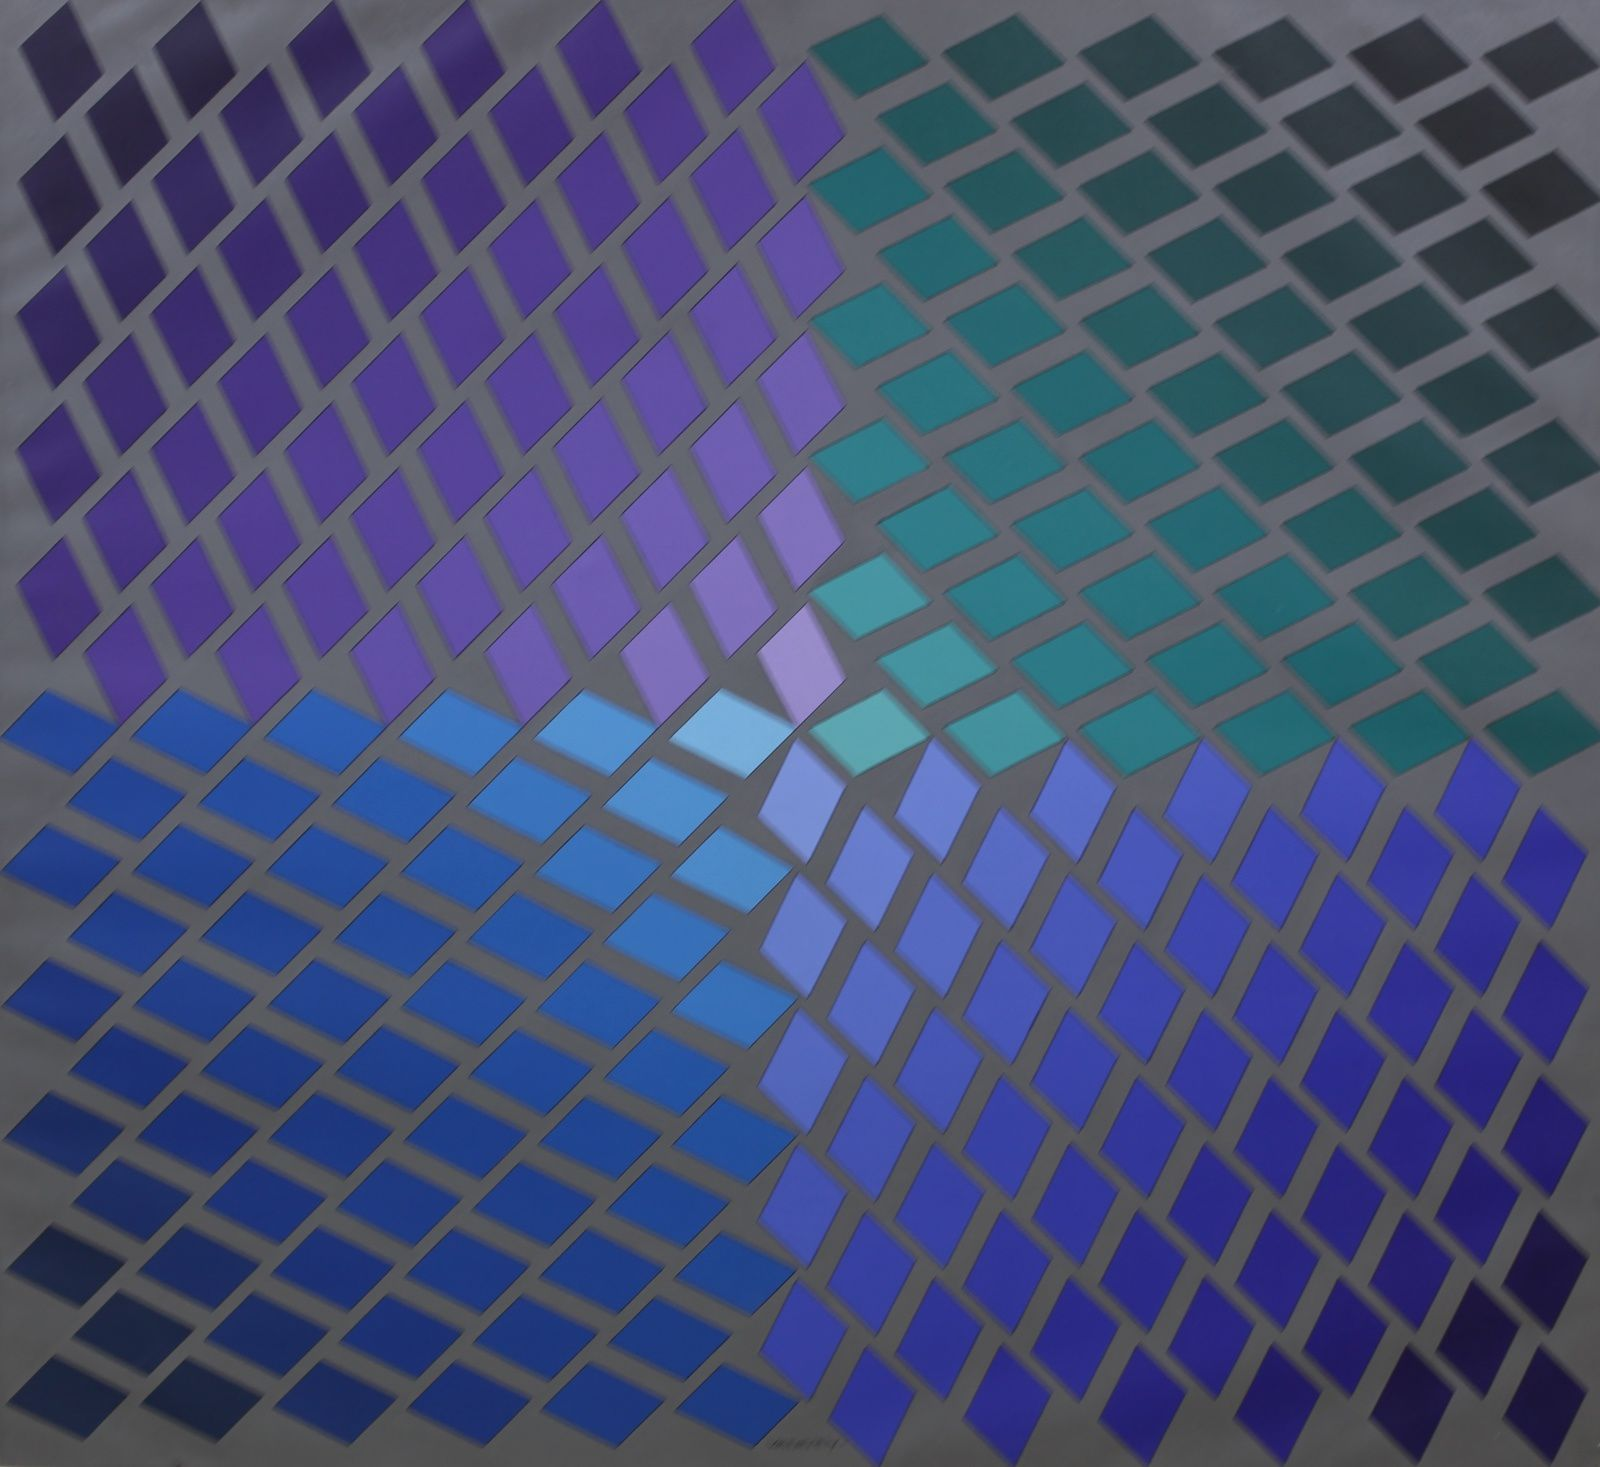 """Tau - 2"", 1973 de Victor VASARELY - Courtesy galerie Berès © Photo Éric Simon"